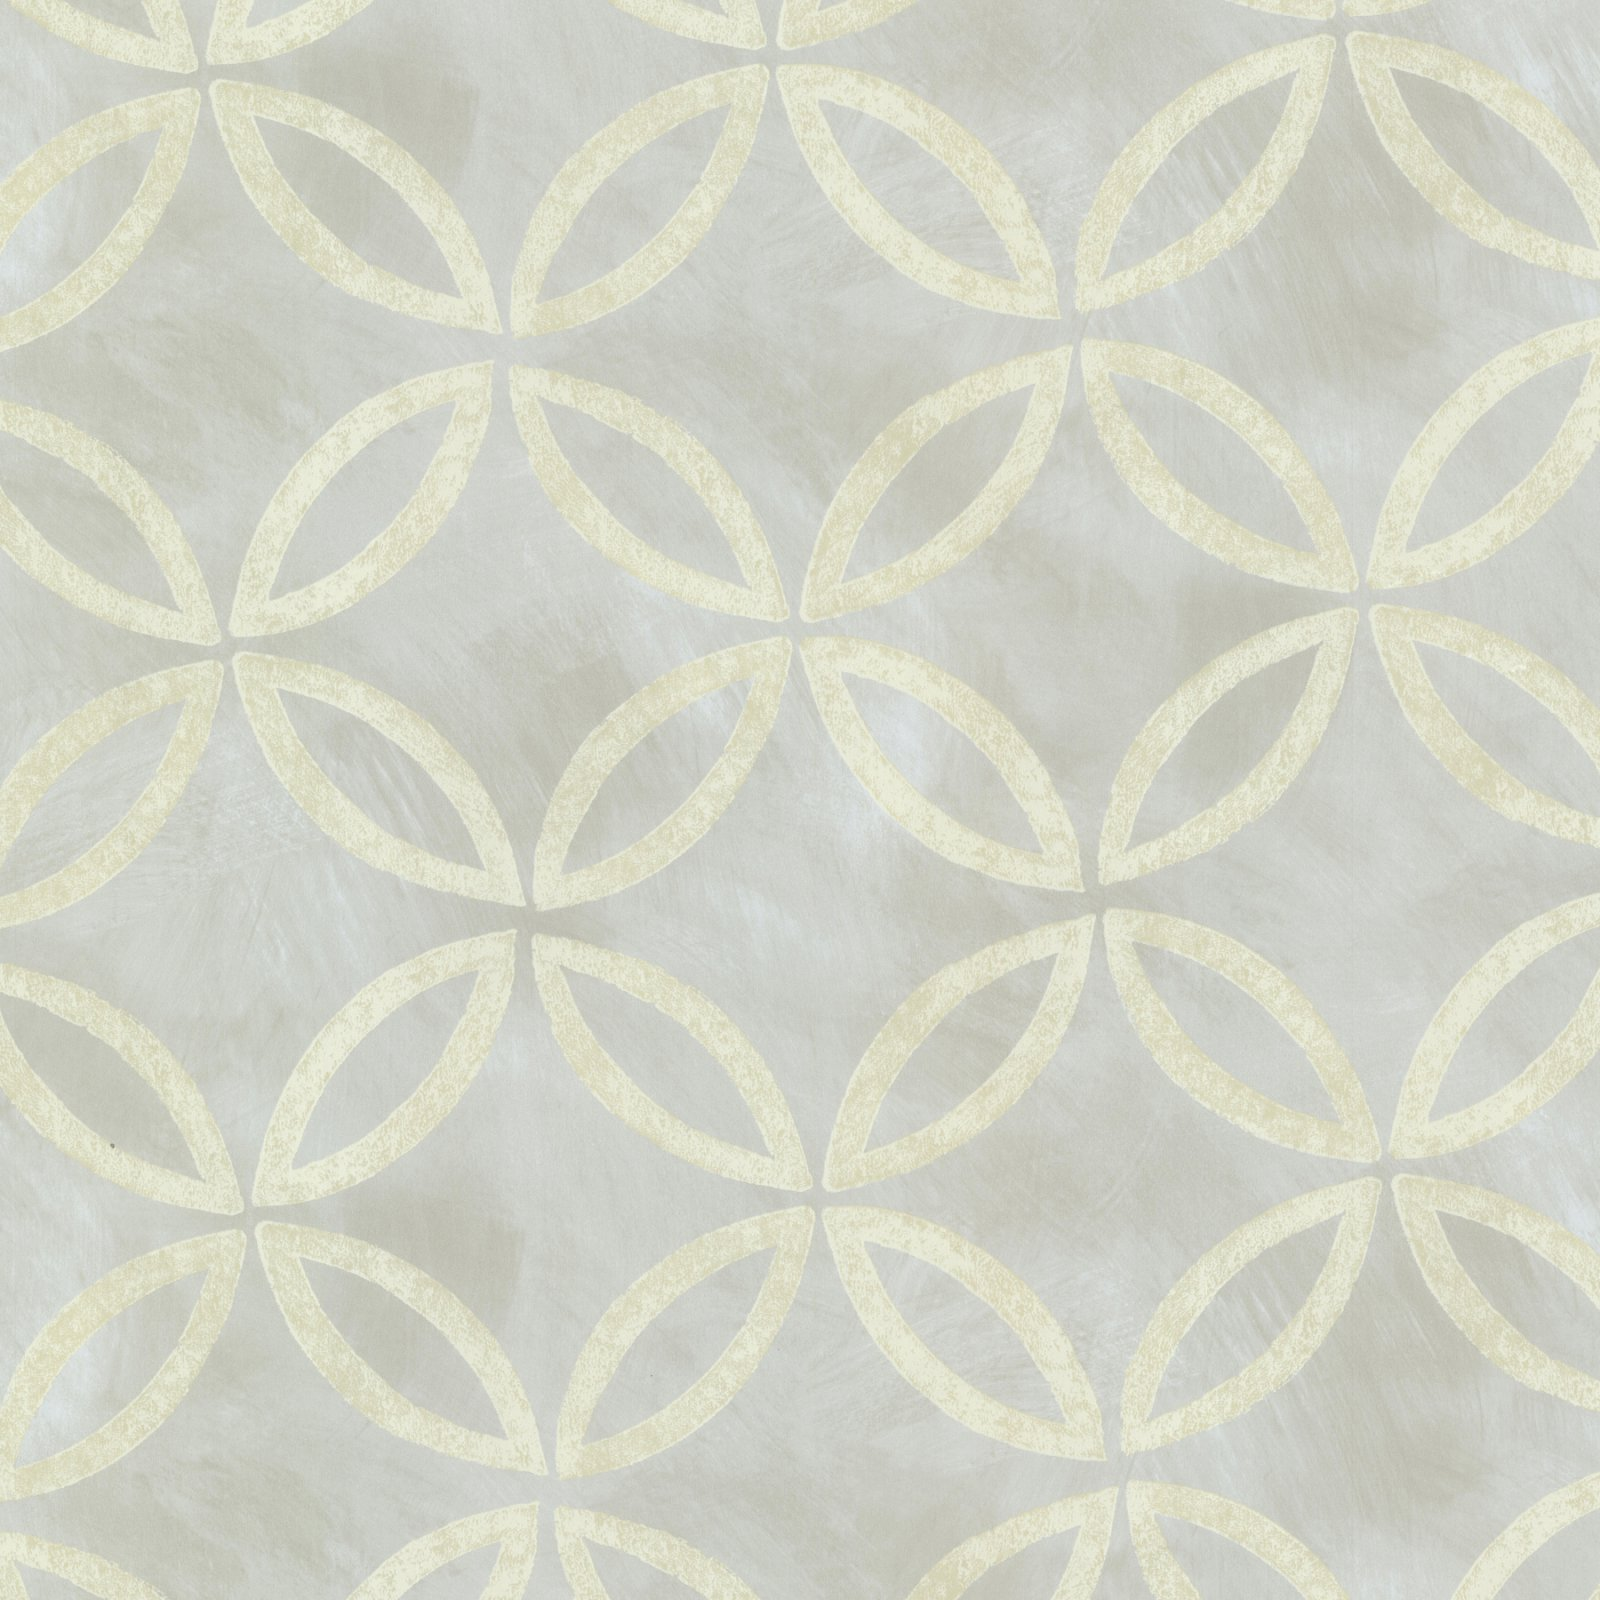 Warner Studios Cloverleaf Geometric Wallpaper